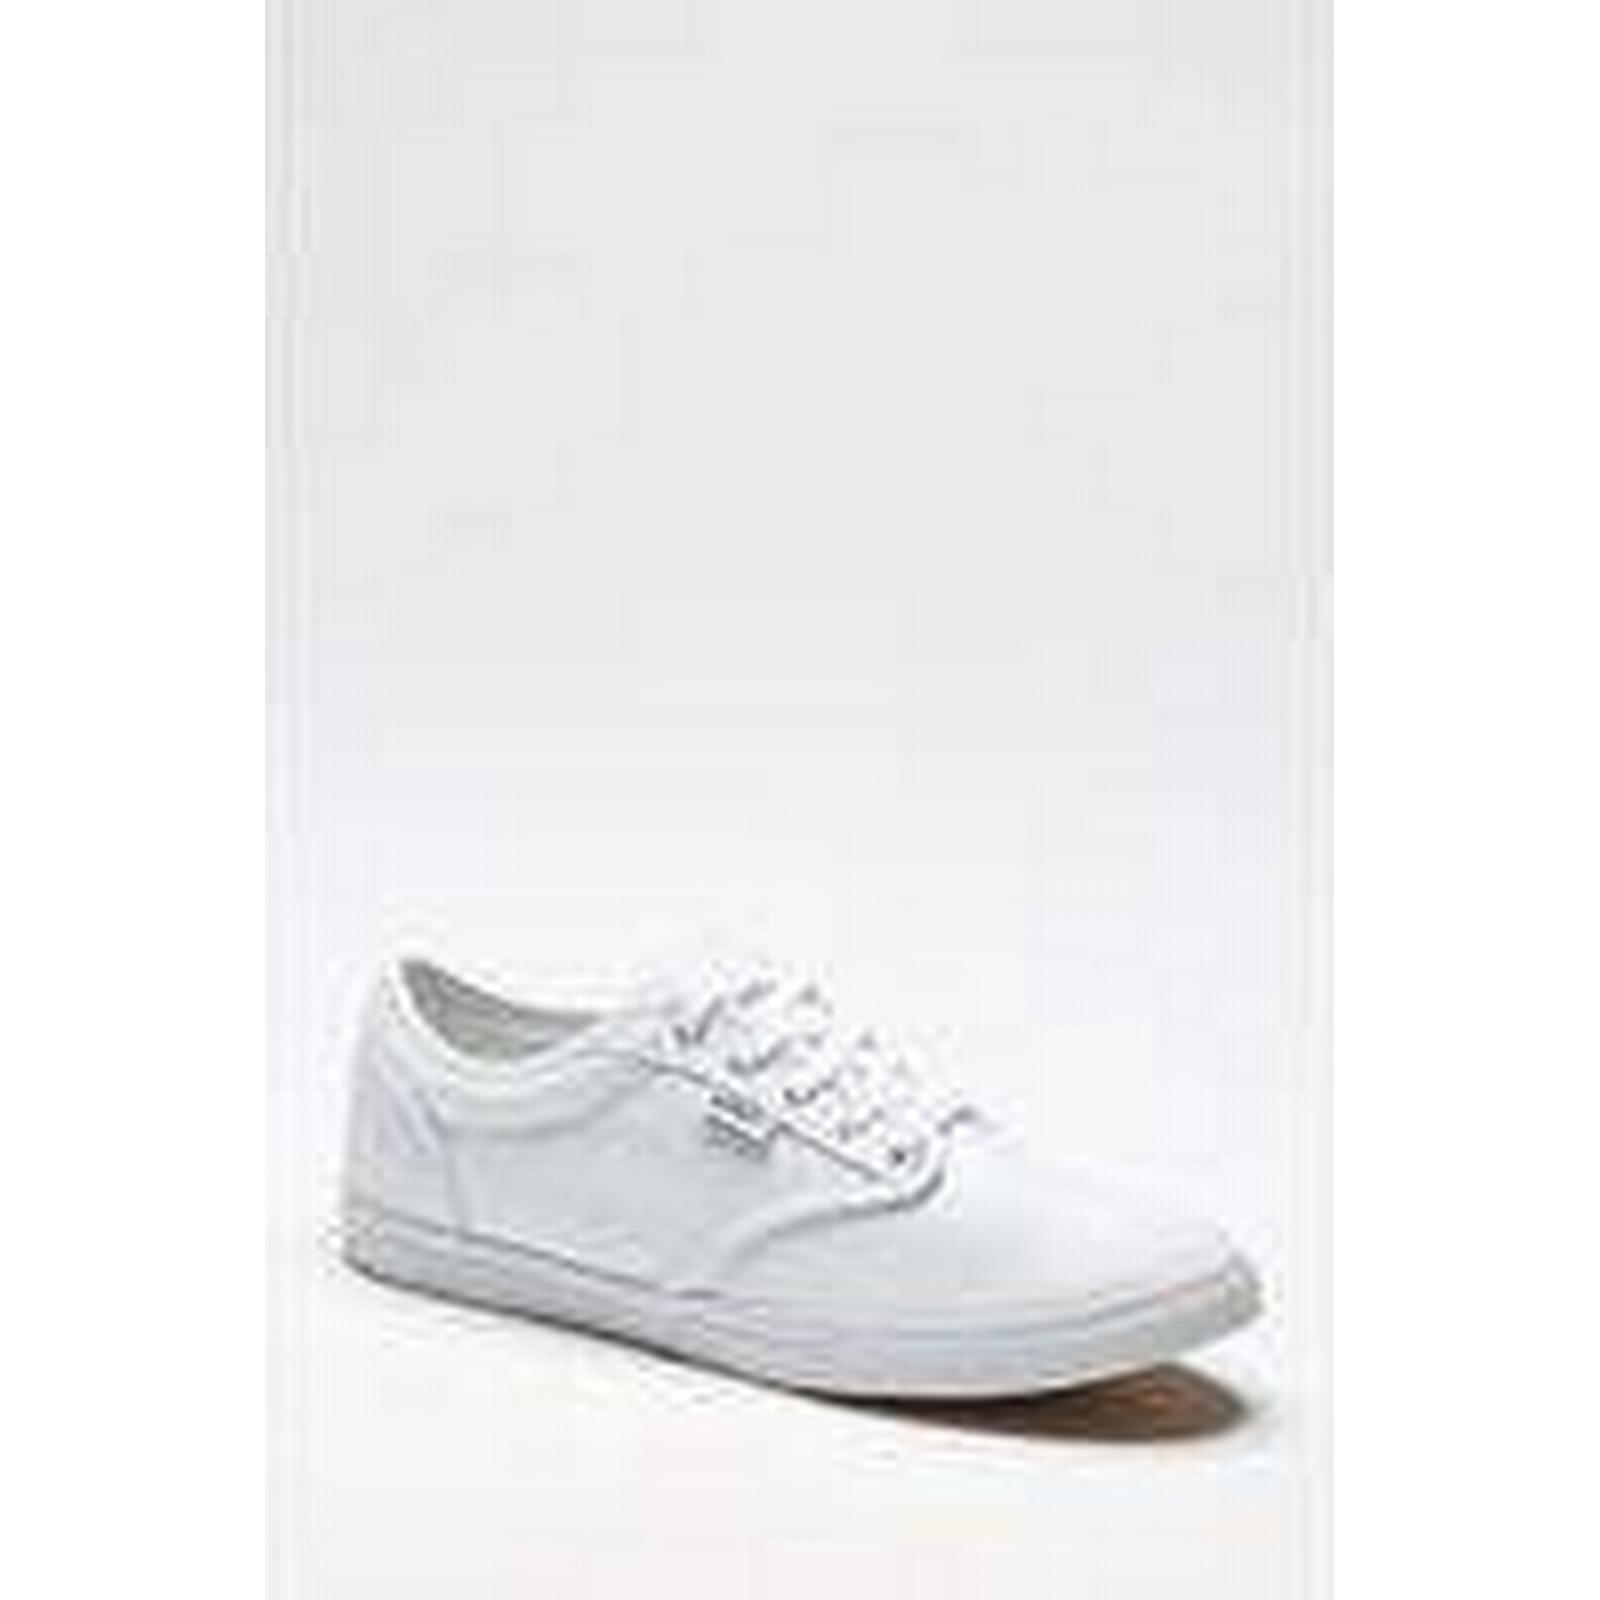 Vans Atwood Atwood Atwood Lo Canvas Pumps b88147